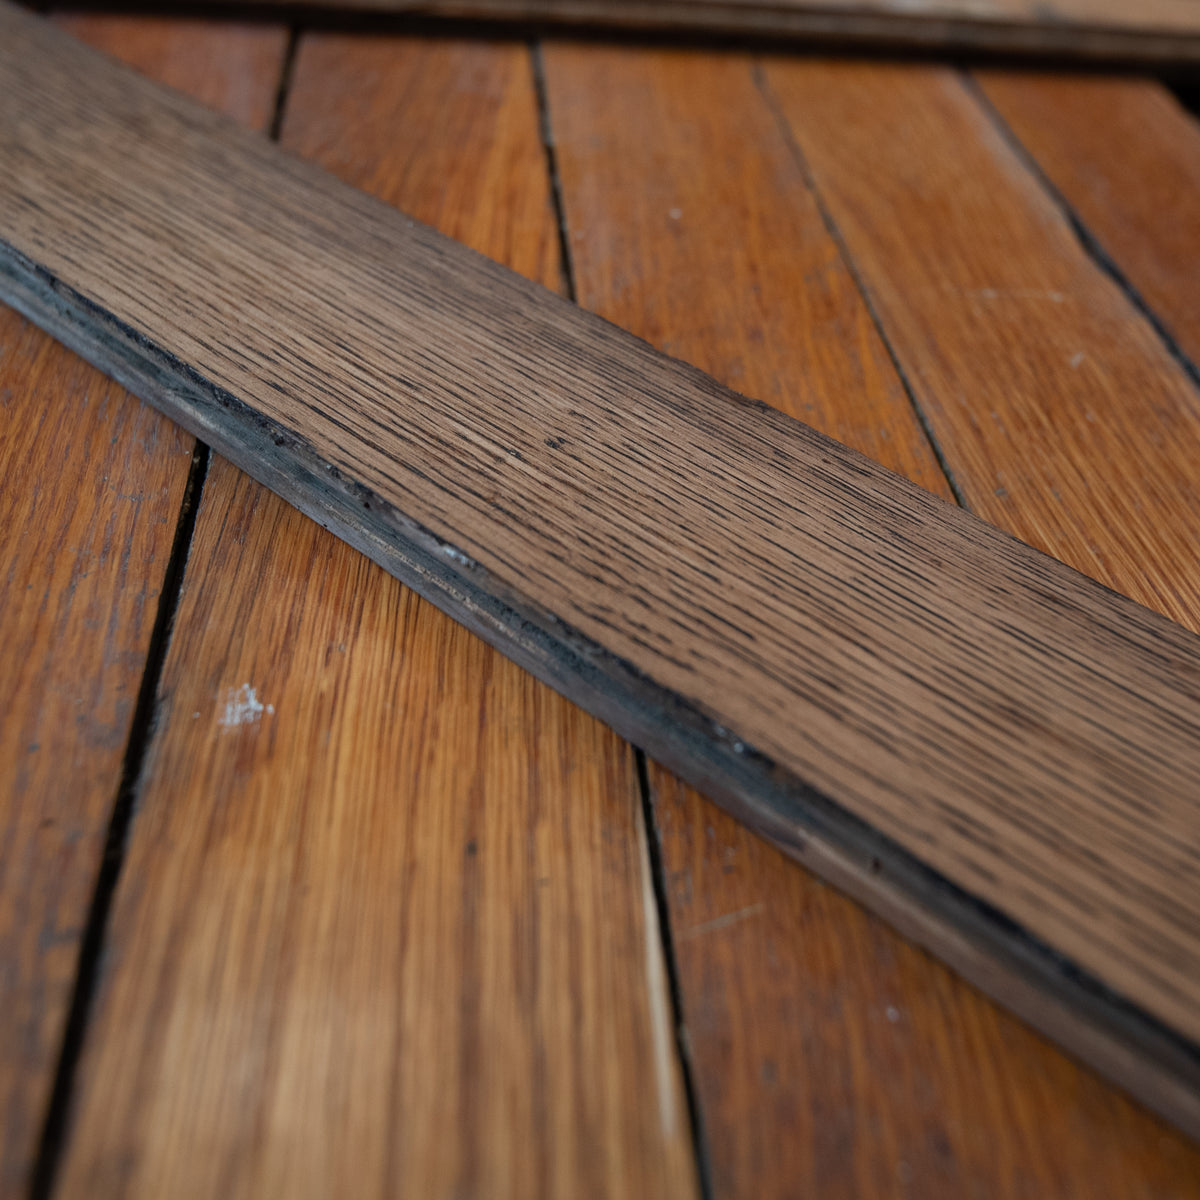 Reclaimed Antique Oak Strip Flooring Floorboards - 7.7cm 24M² available | The Architectural Forum